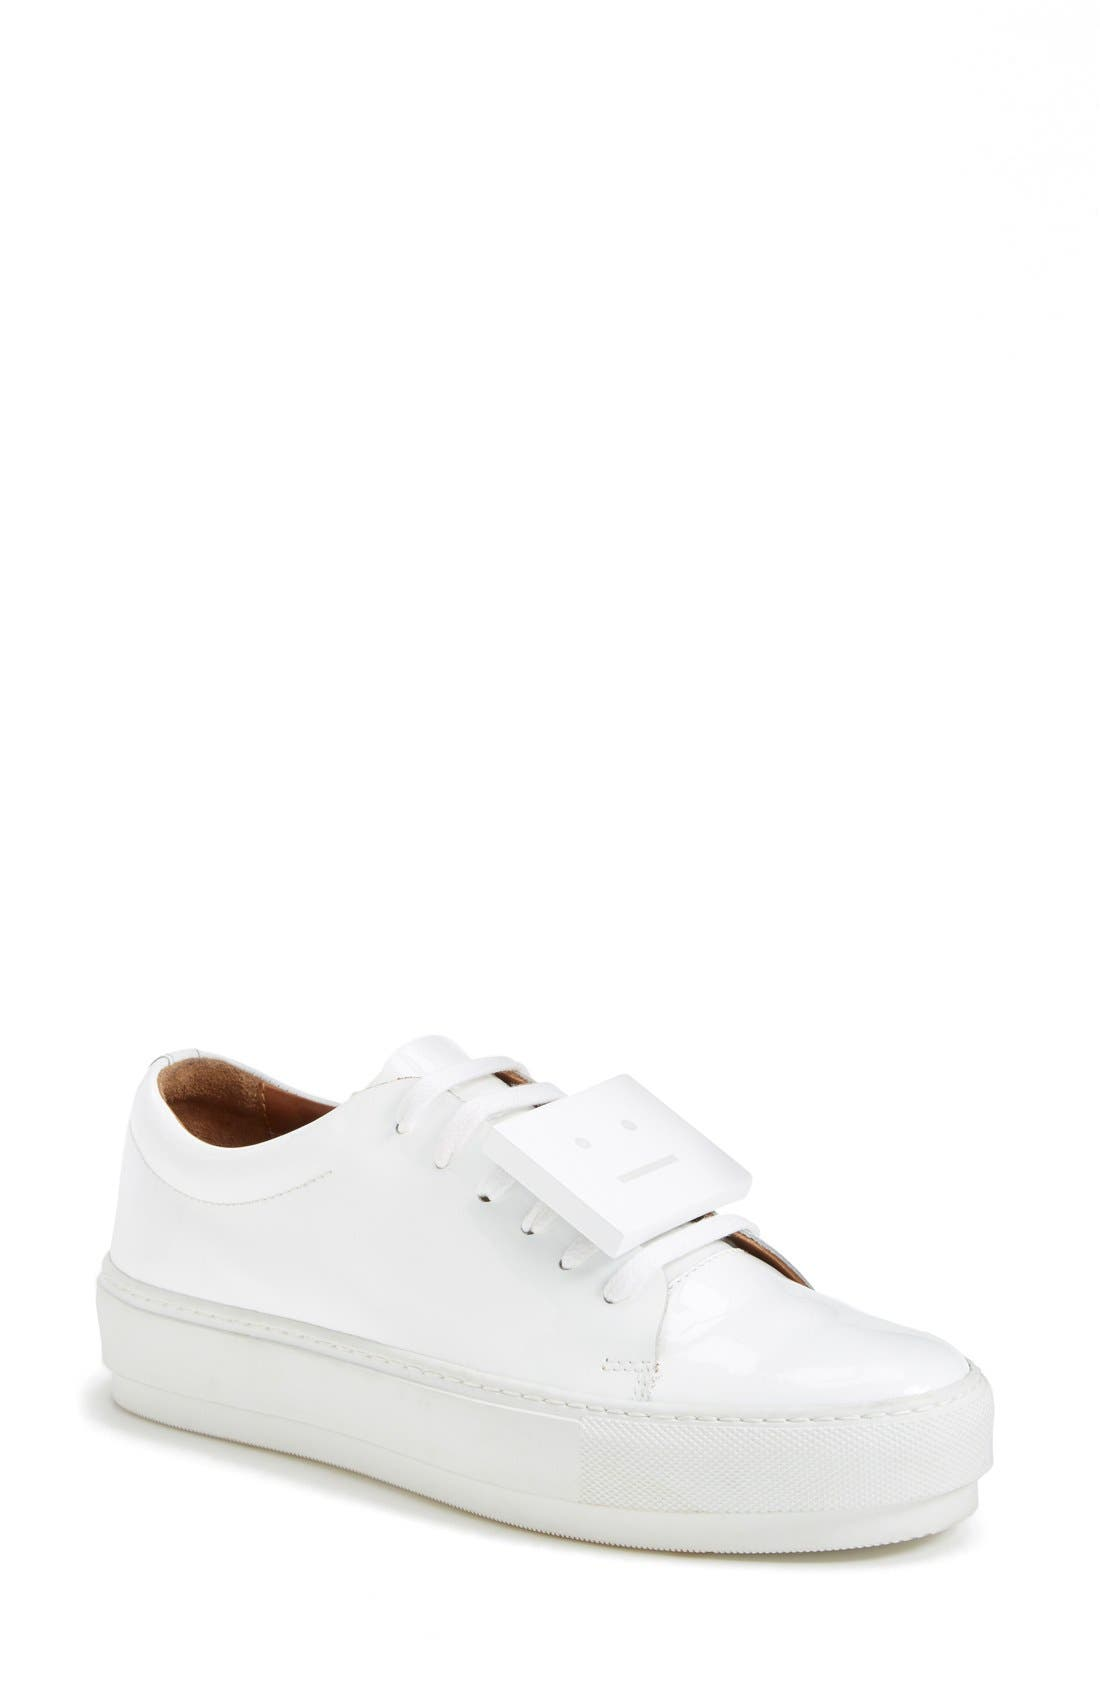 Adriana Leather Sneaker,                             Main thumbnail 1, color,